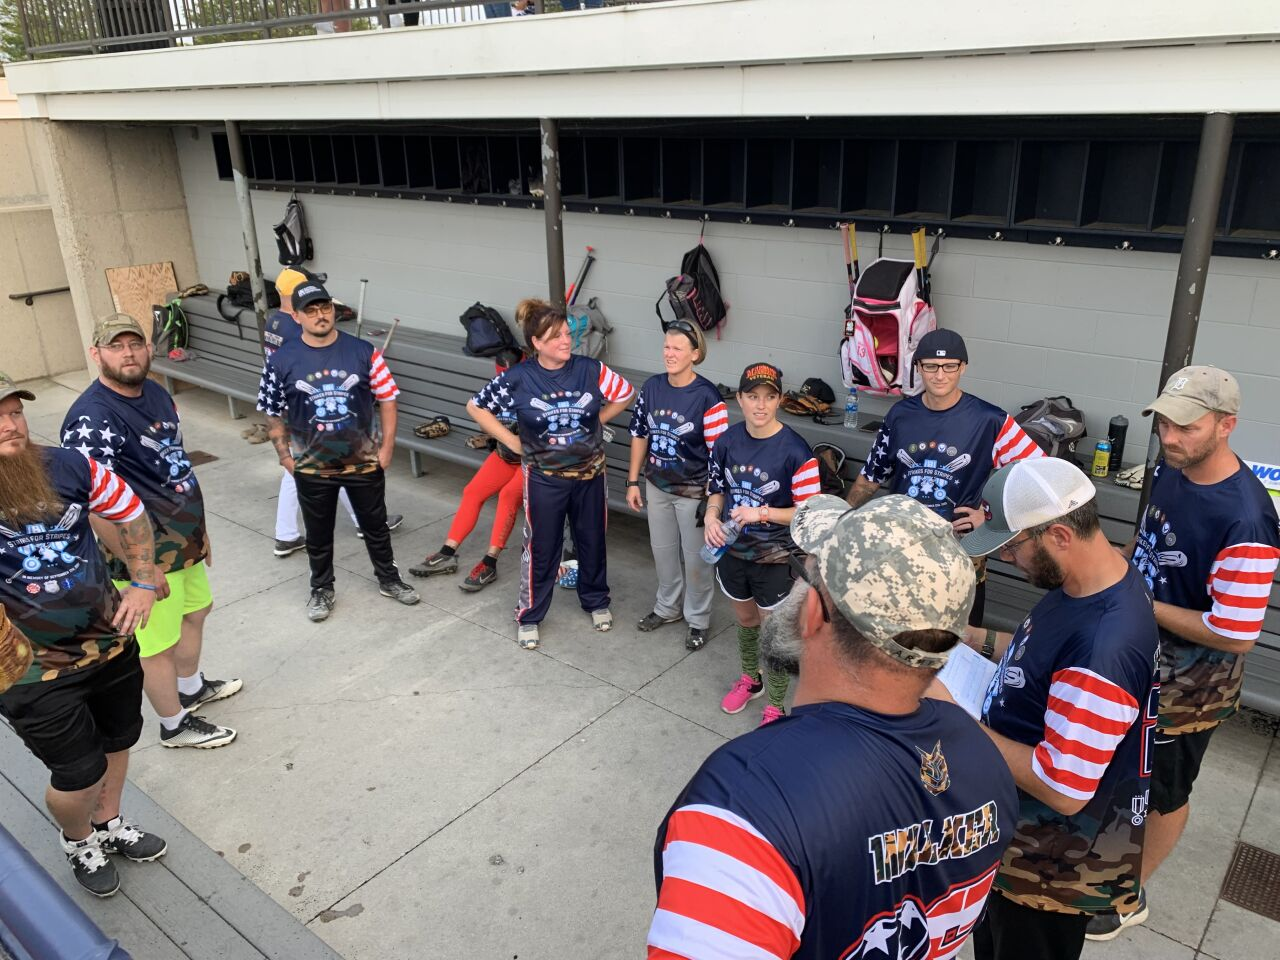 'Strikes for Stripes' charity softball game